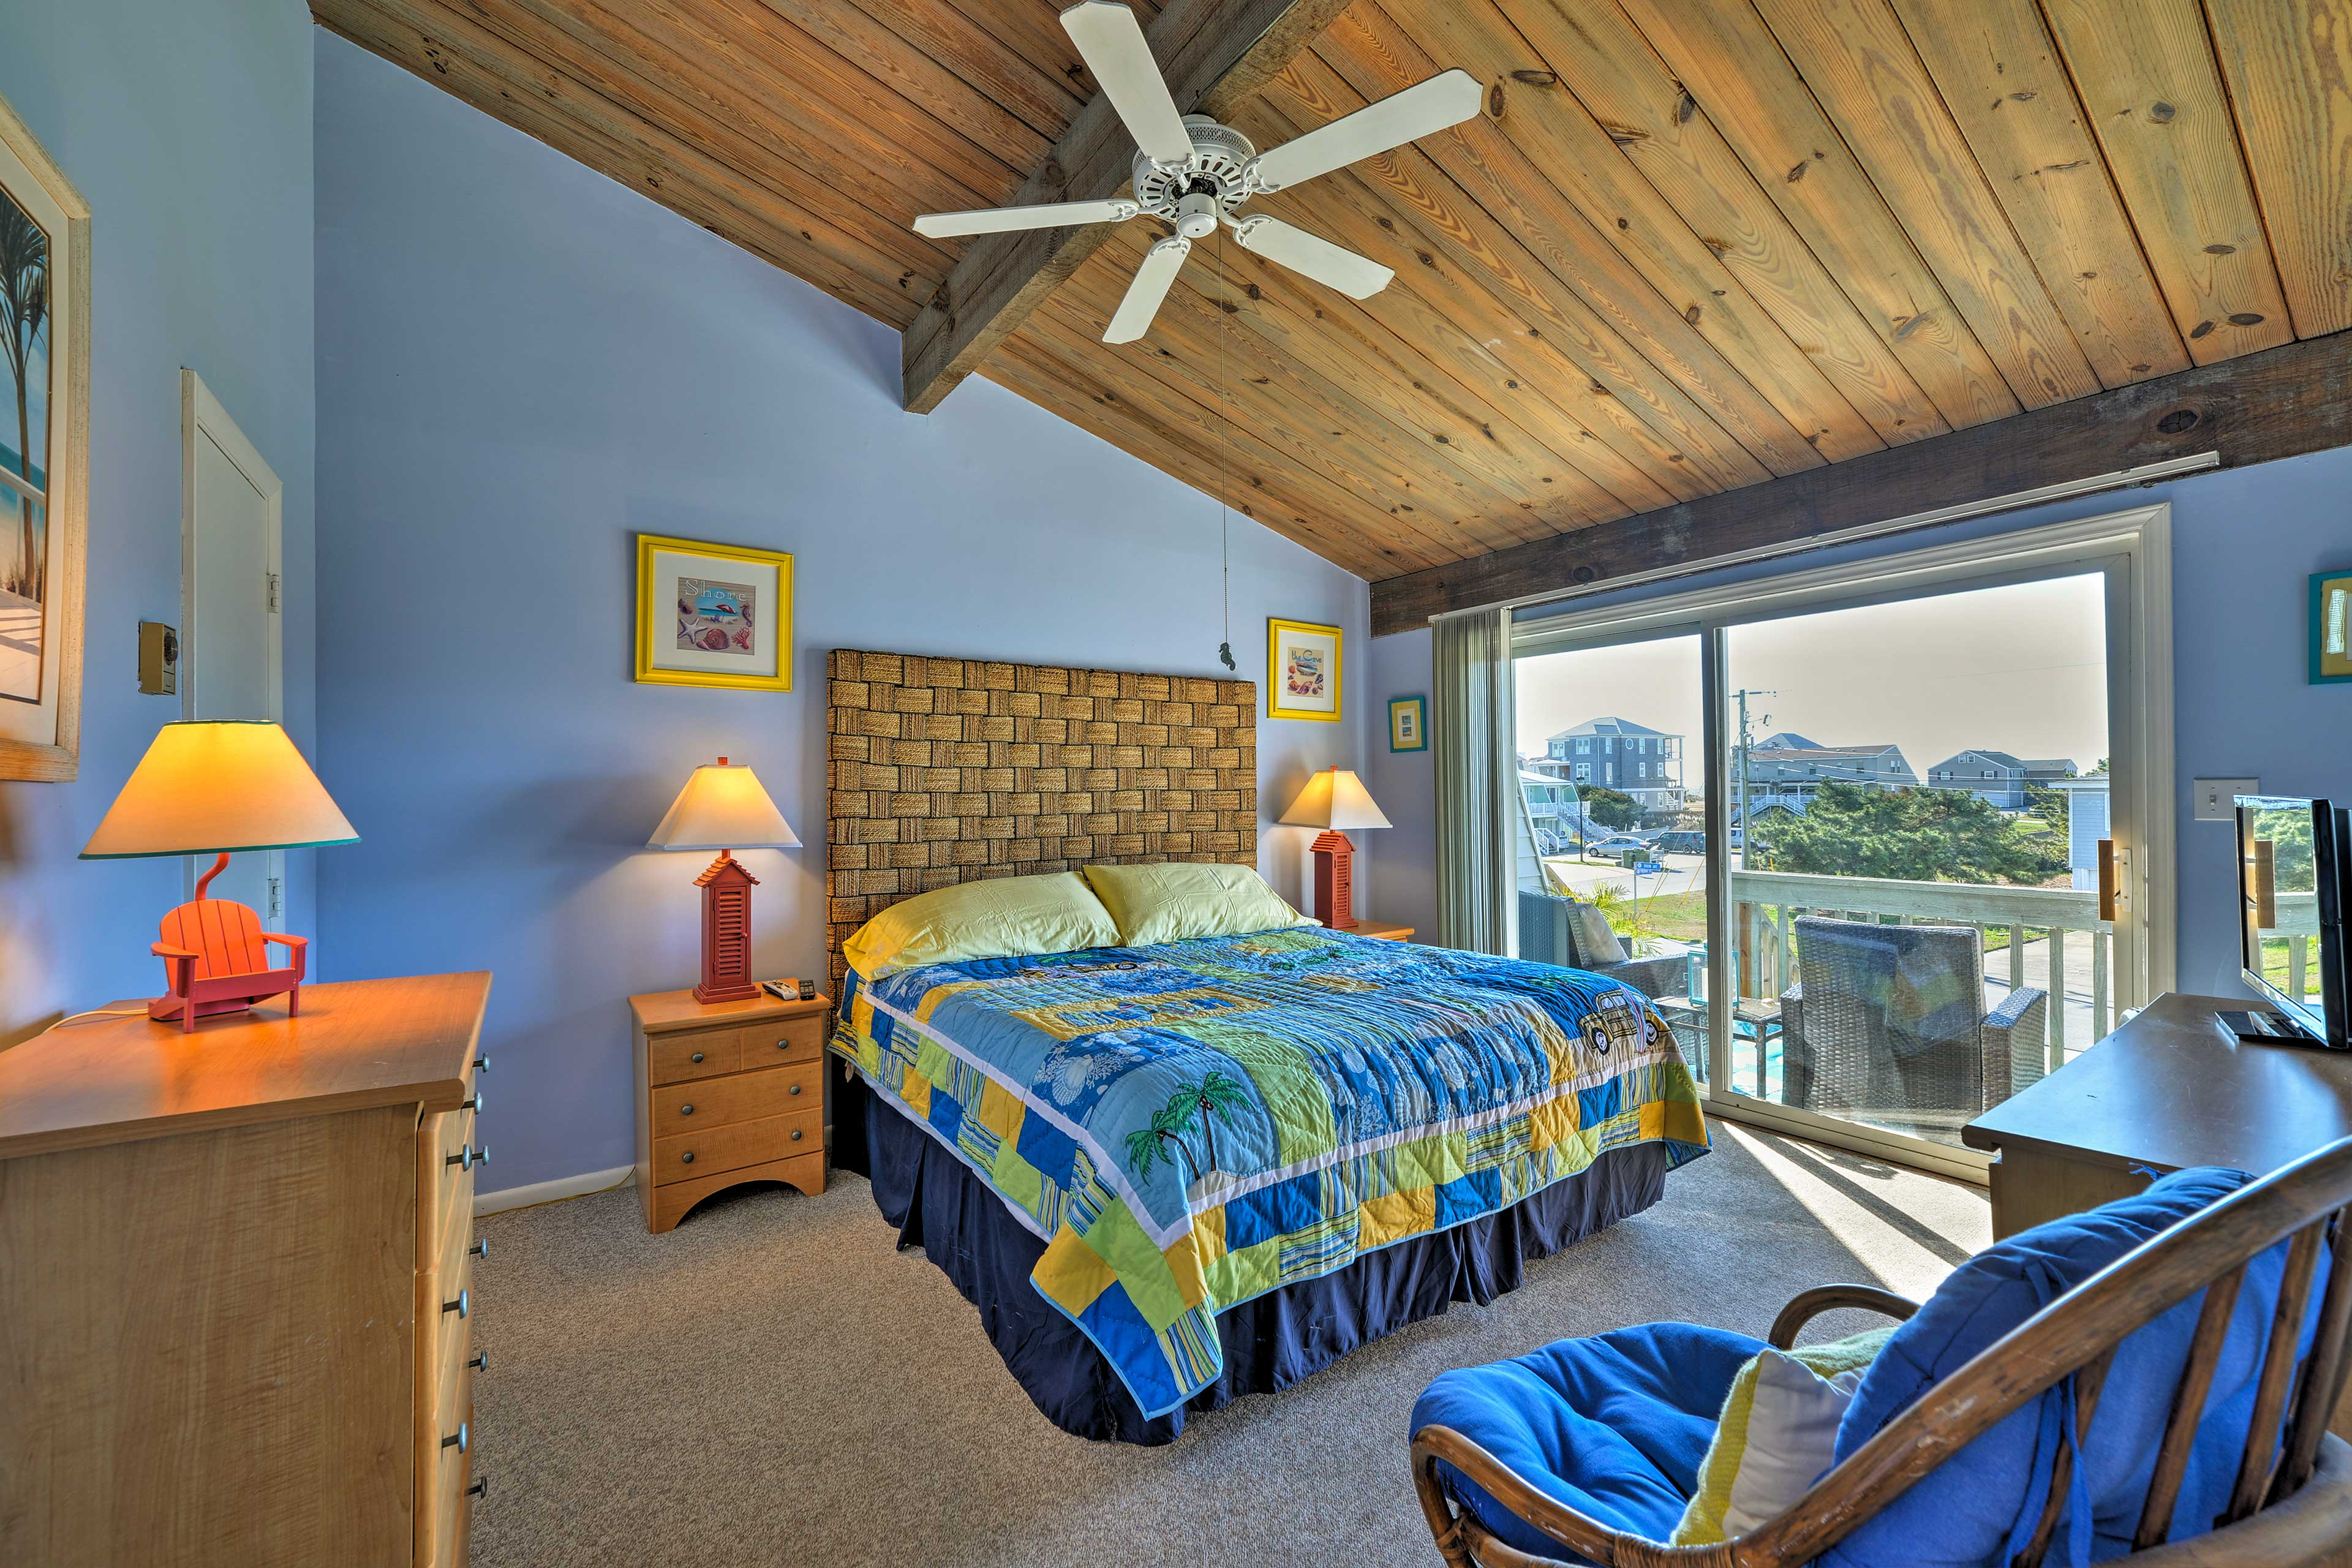 The master bedroom offers a plush king-sized bed.